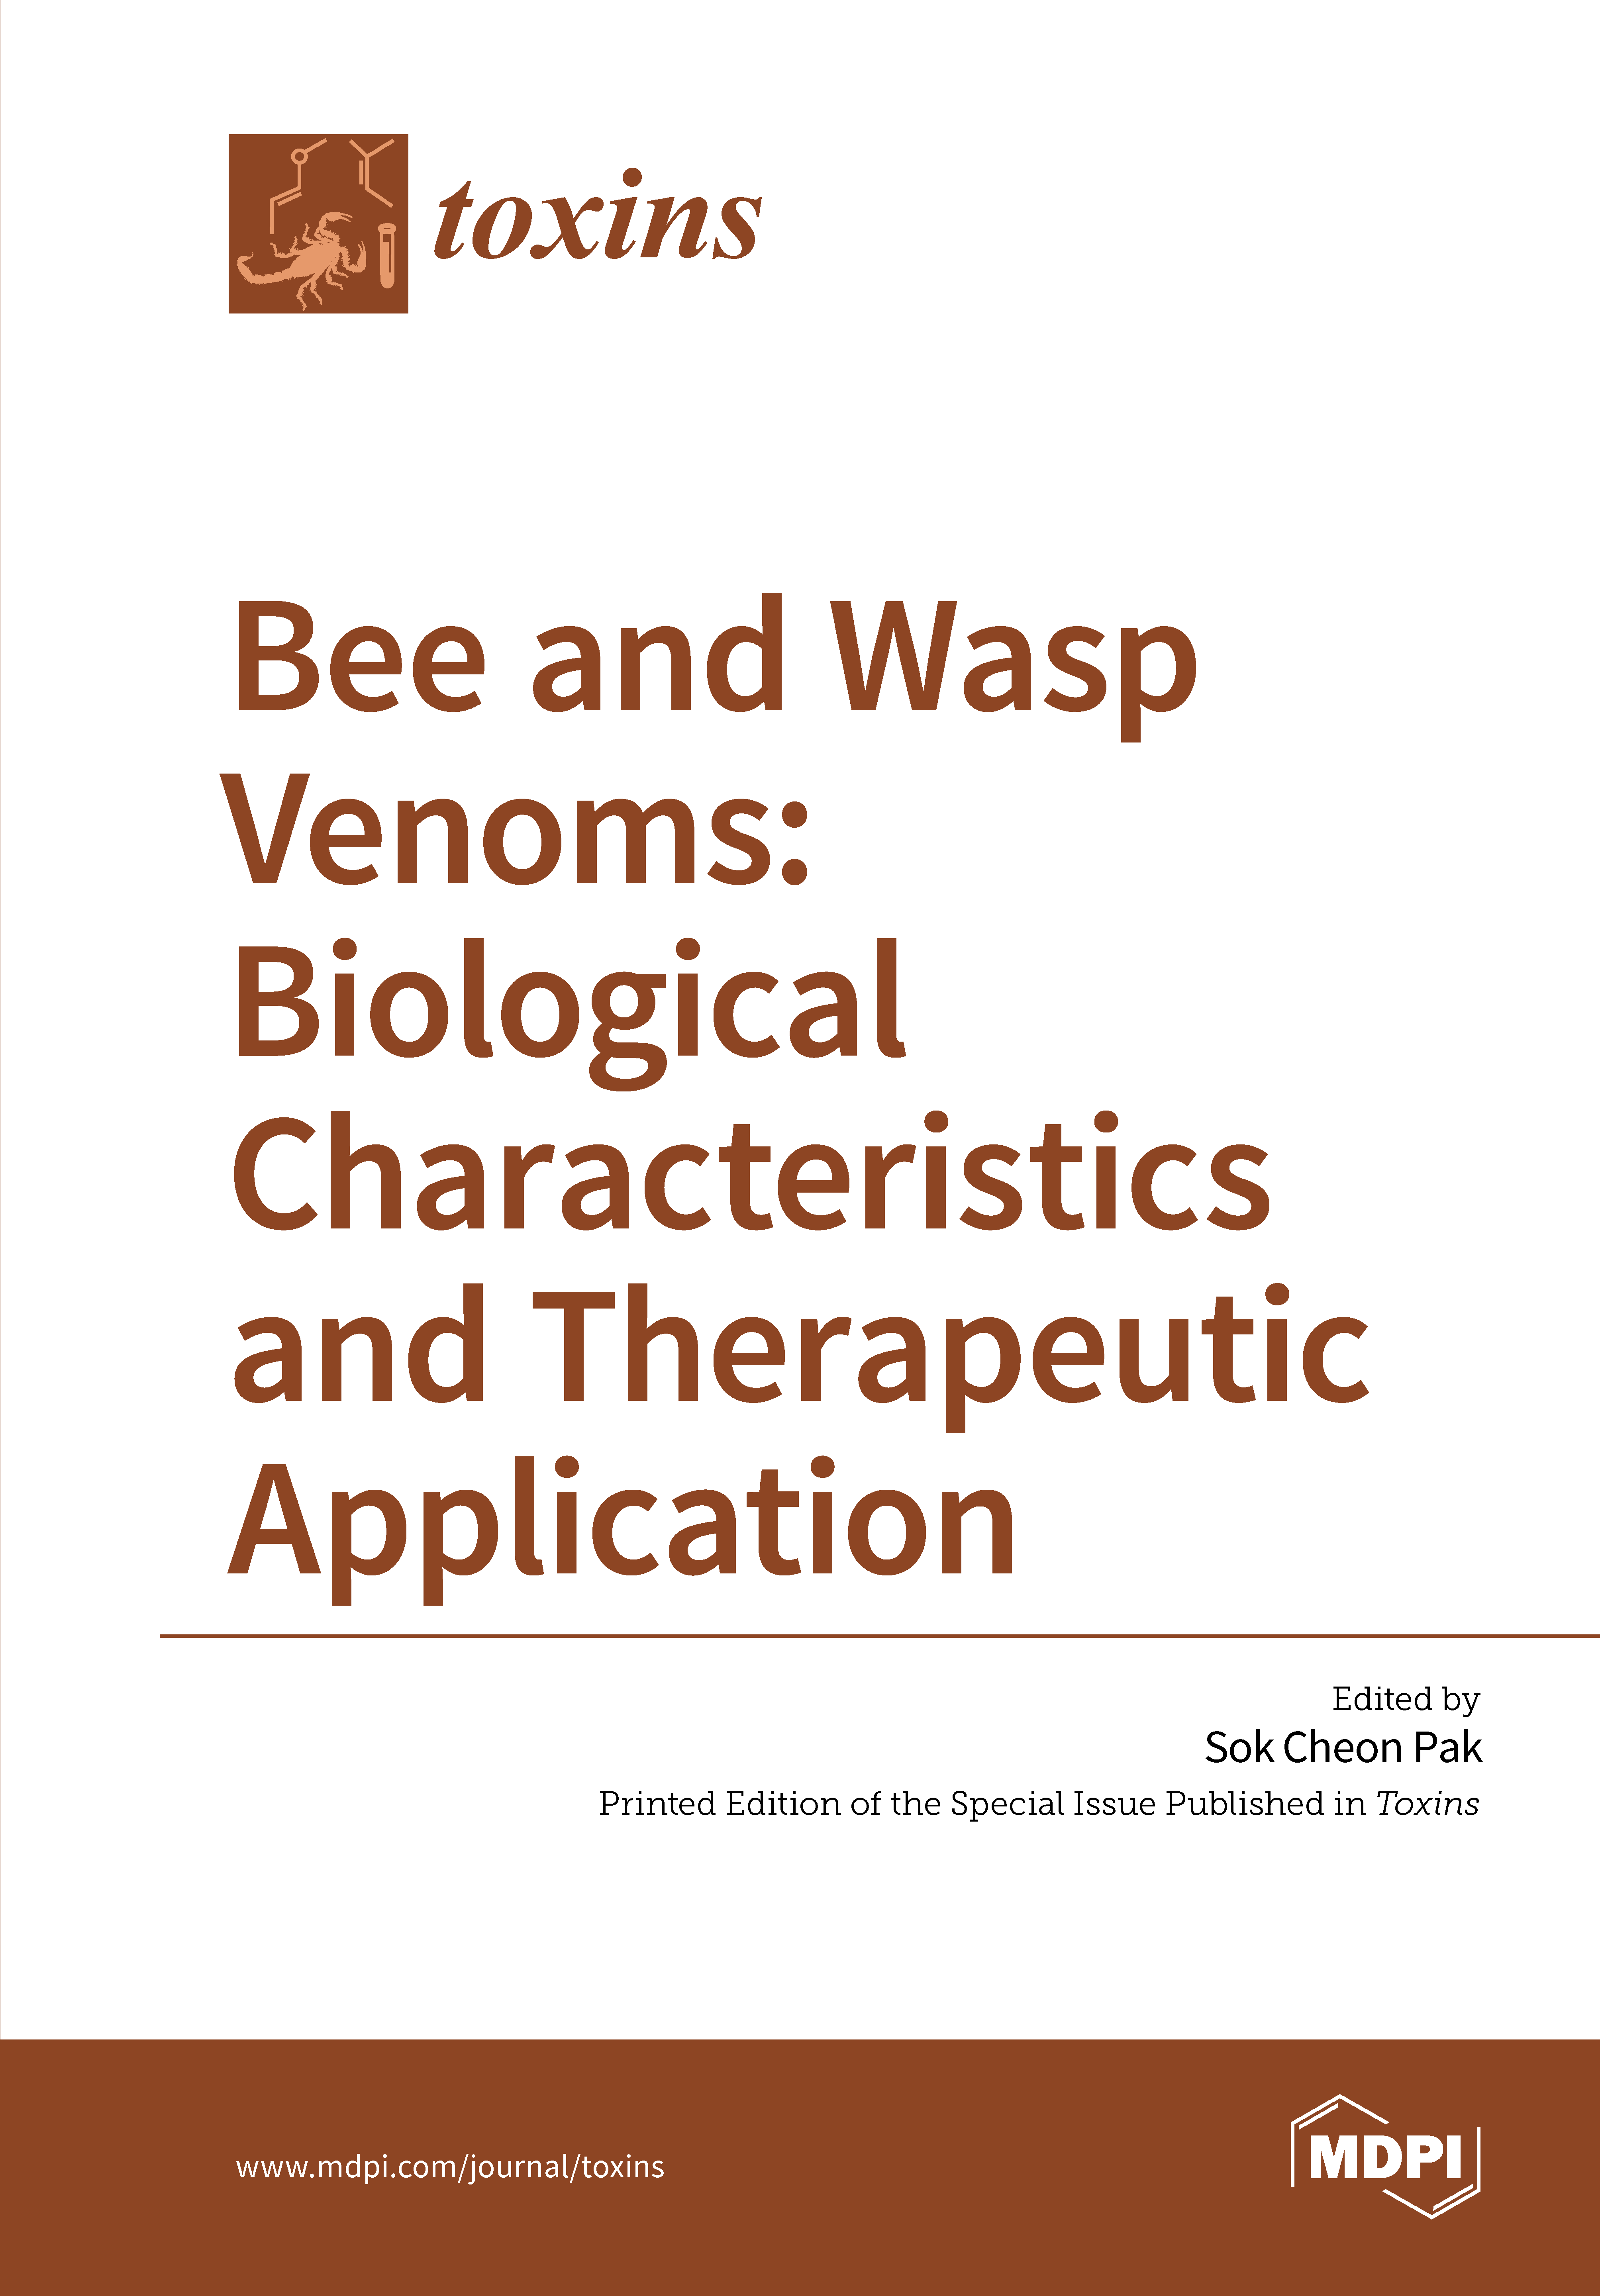 Bee and Wasp Venoms: Biological Characteristics and Therapeutic Application